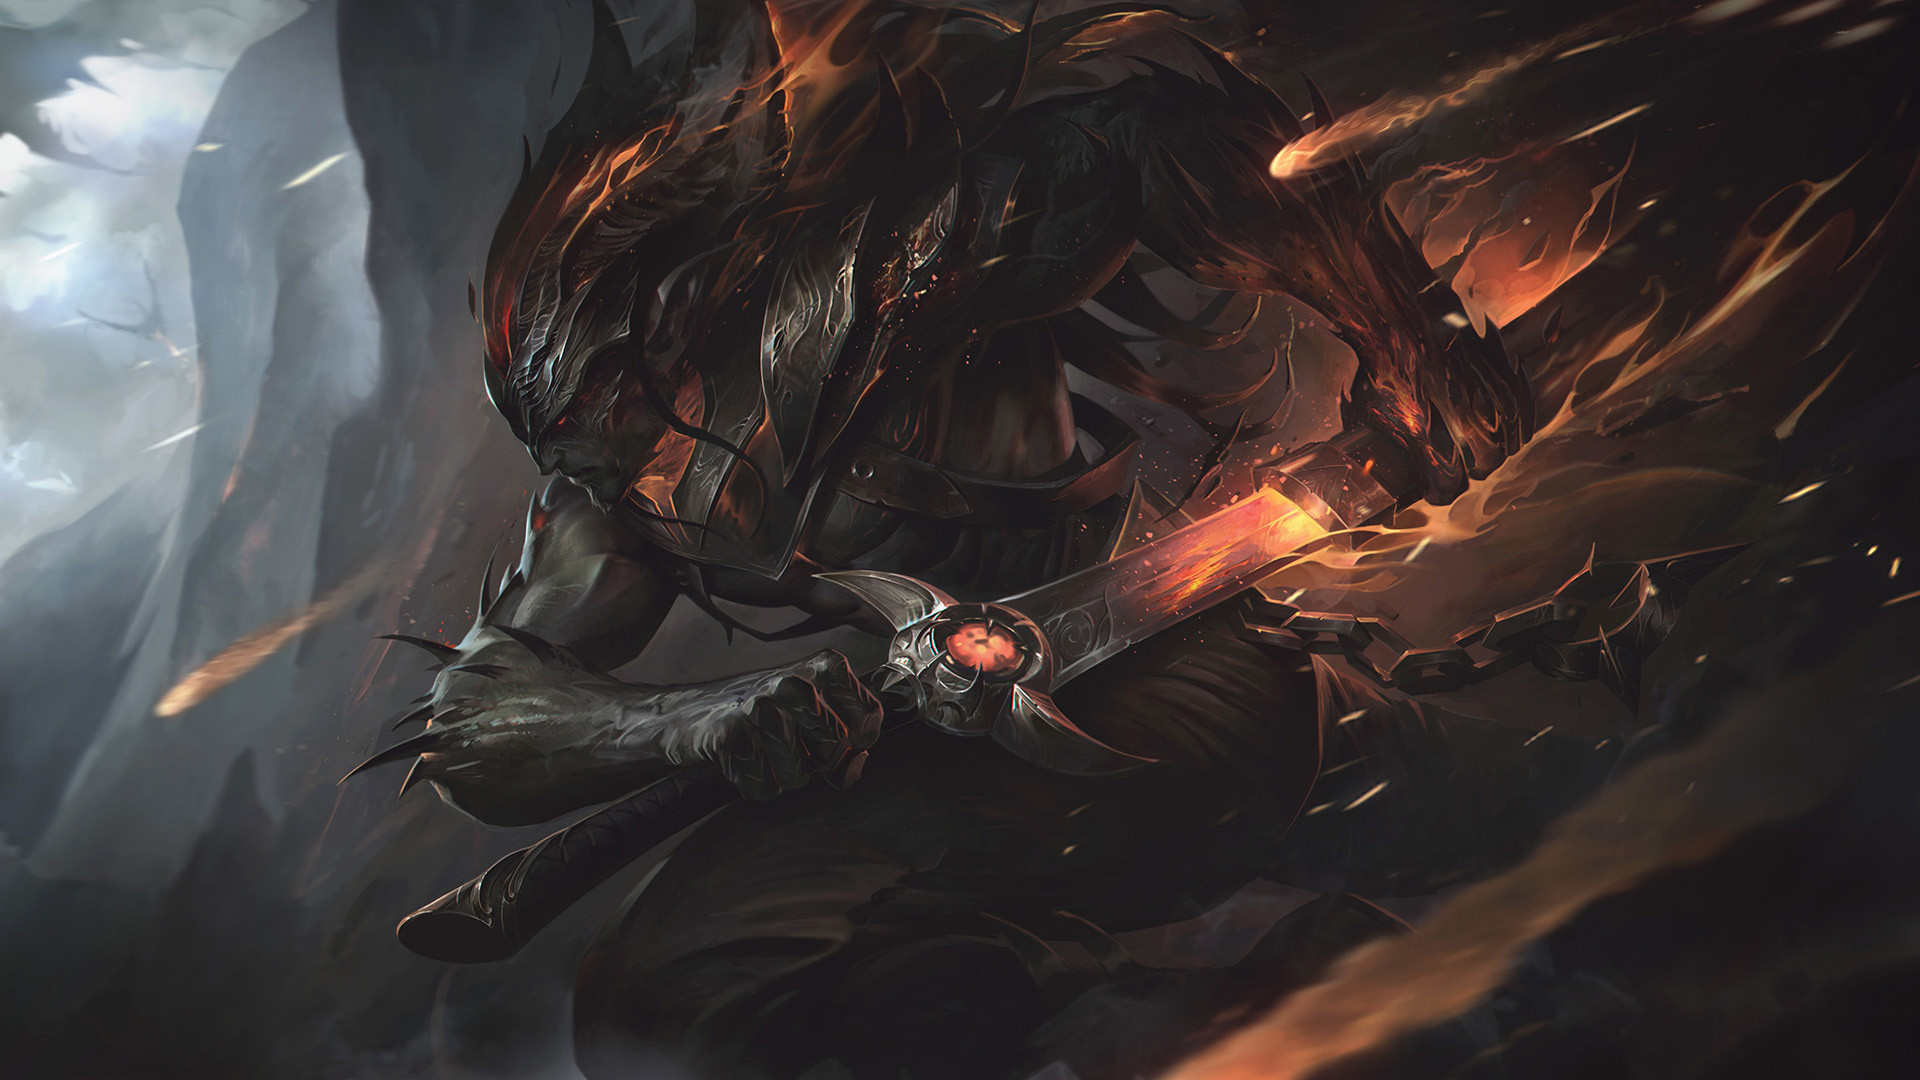 1920x1080 Nightbringer Yasuo 1080p Laptop Full Hd Wallpaper Hd Games 4k Wallpapers Images Photos And Background